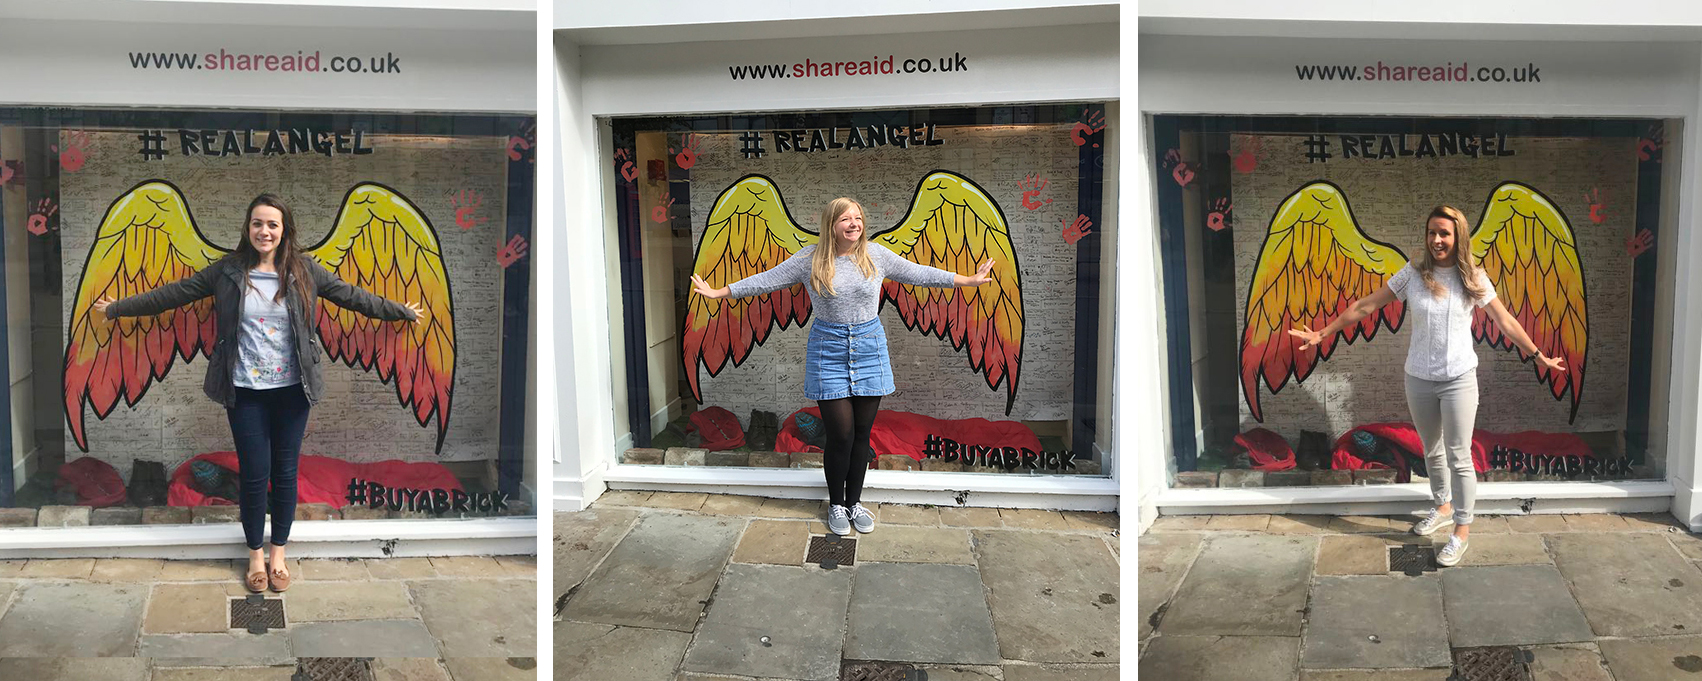 We 'share' our #RealAngel selfies with you